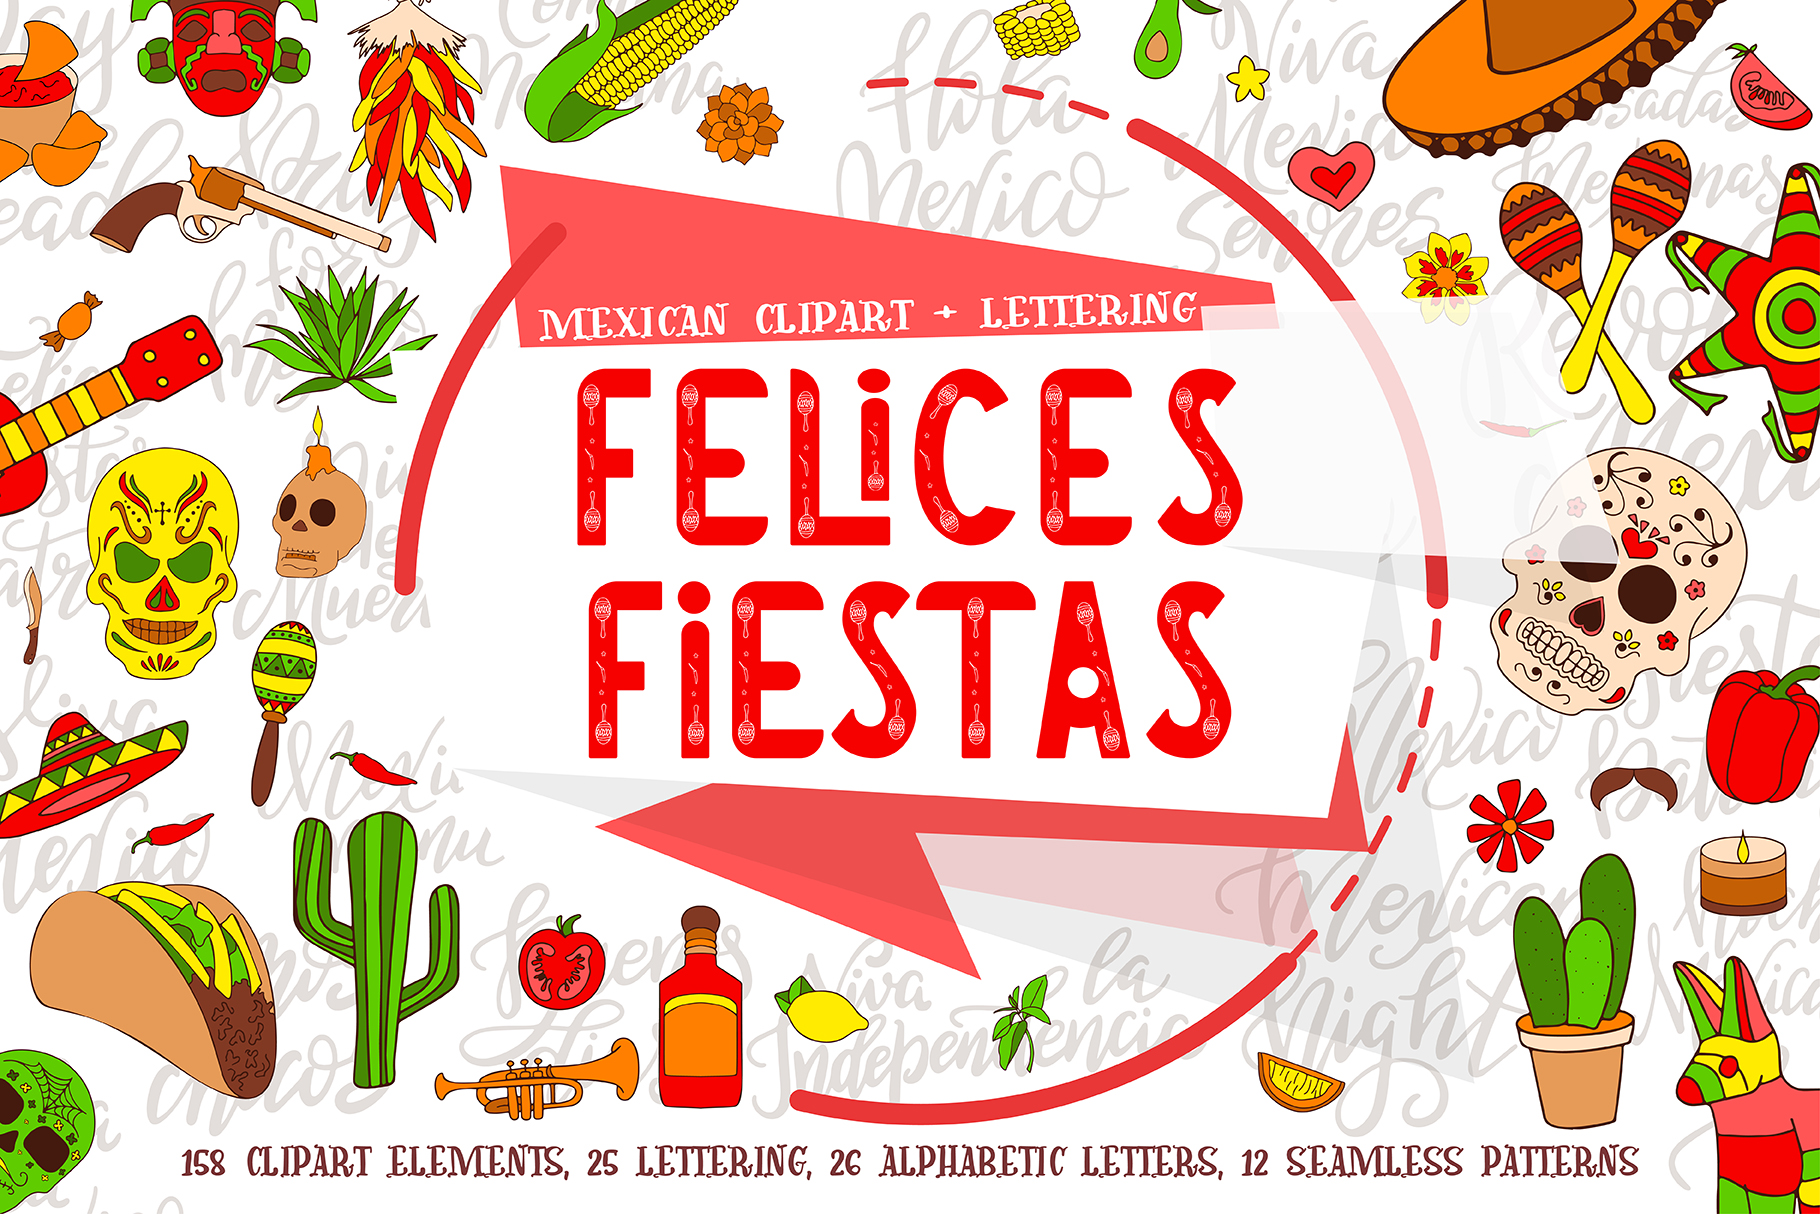 Felices Fiestas Clipart + Lettering Graphic By tregubova.jul